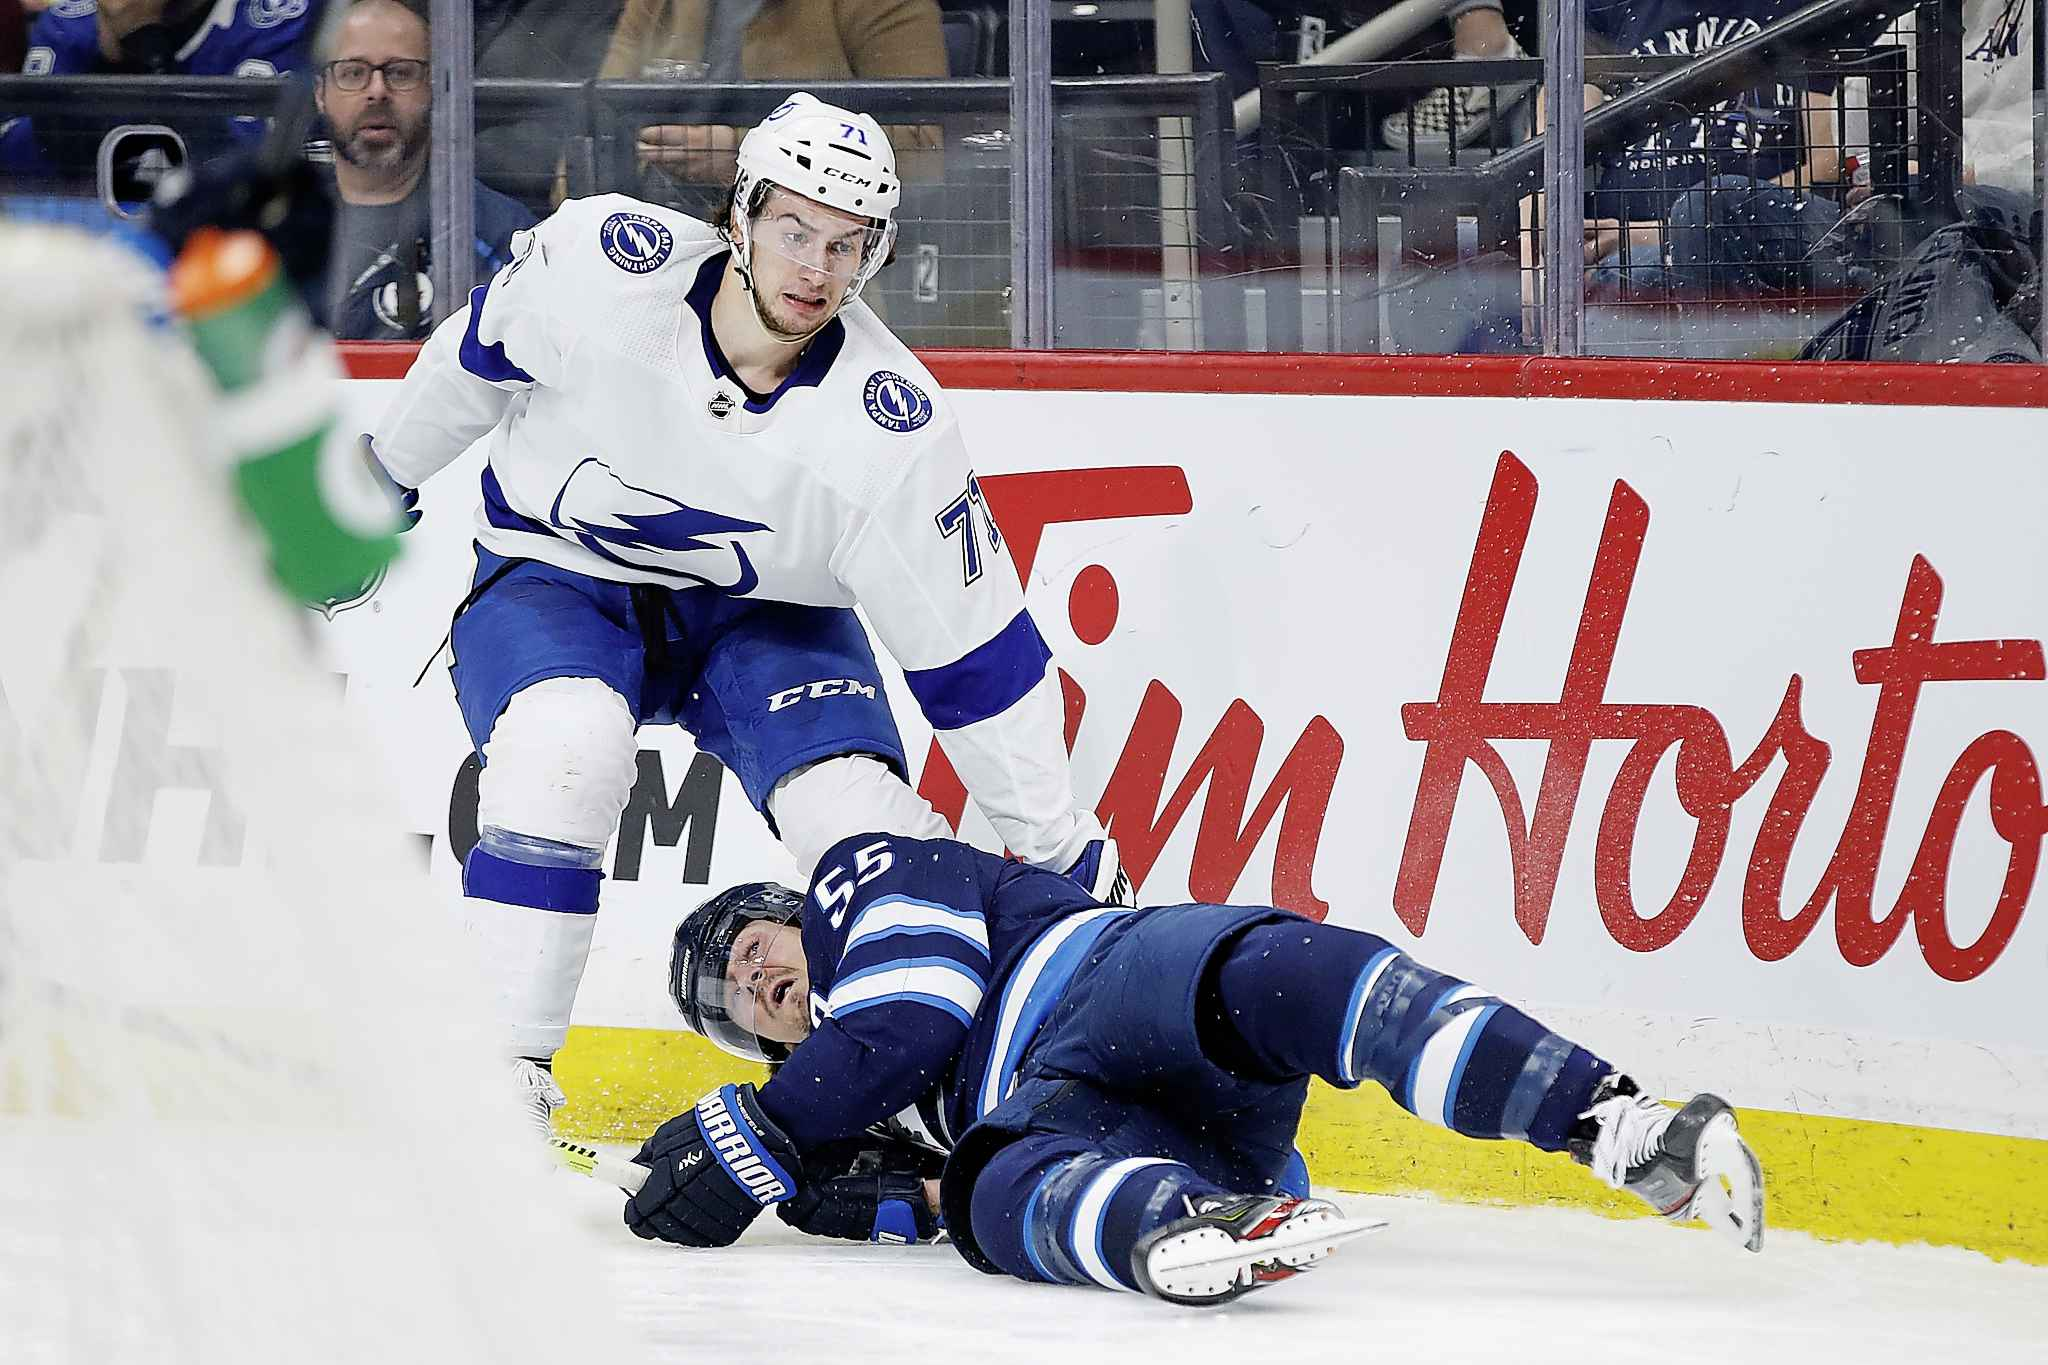 <p>Winnipeg Jets' Mark Scheifele gets checked by Tampa Bay Lightning's Anthony Cirelli during second period NHL action in Winnipeg on Friday.</p>